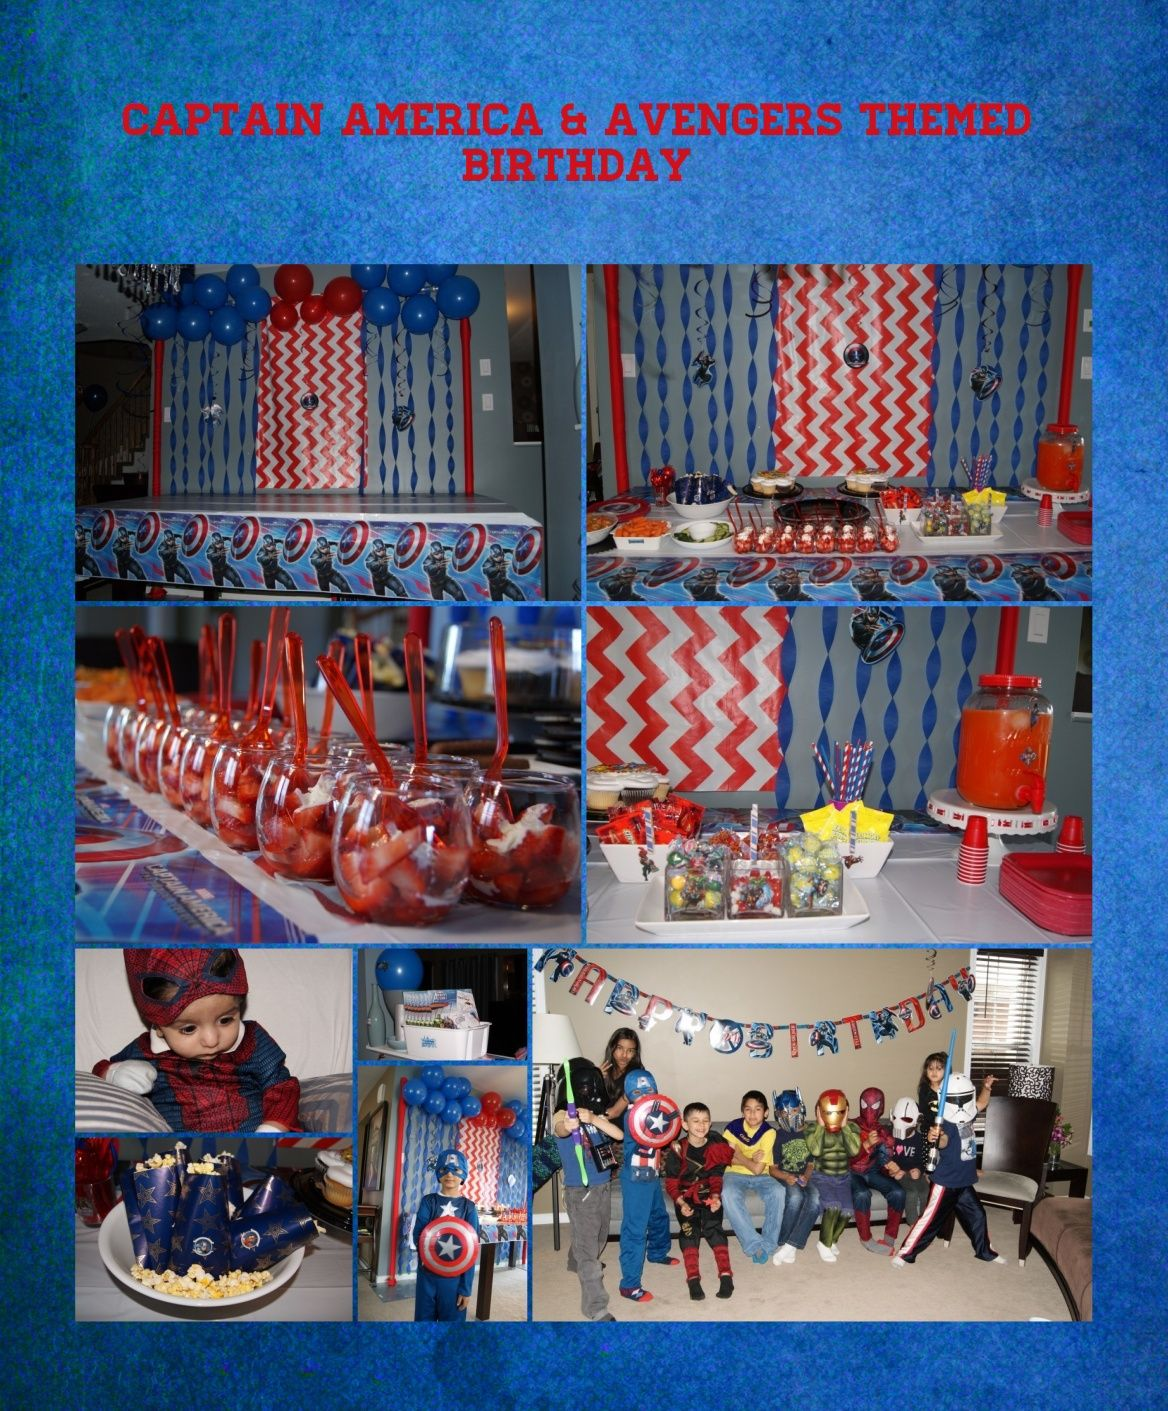 Captain America And The Avengers Themed Birthday Party DIY Backdrop With Red Blue Decor Details All Kids In Superhero Costumes